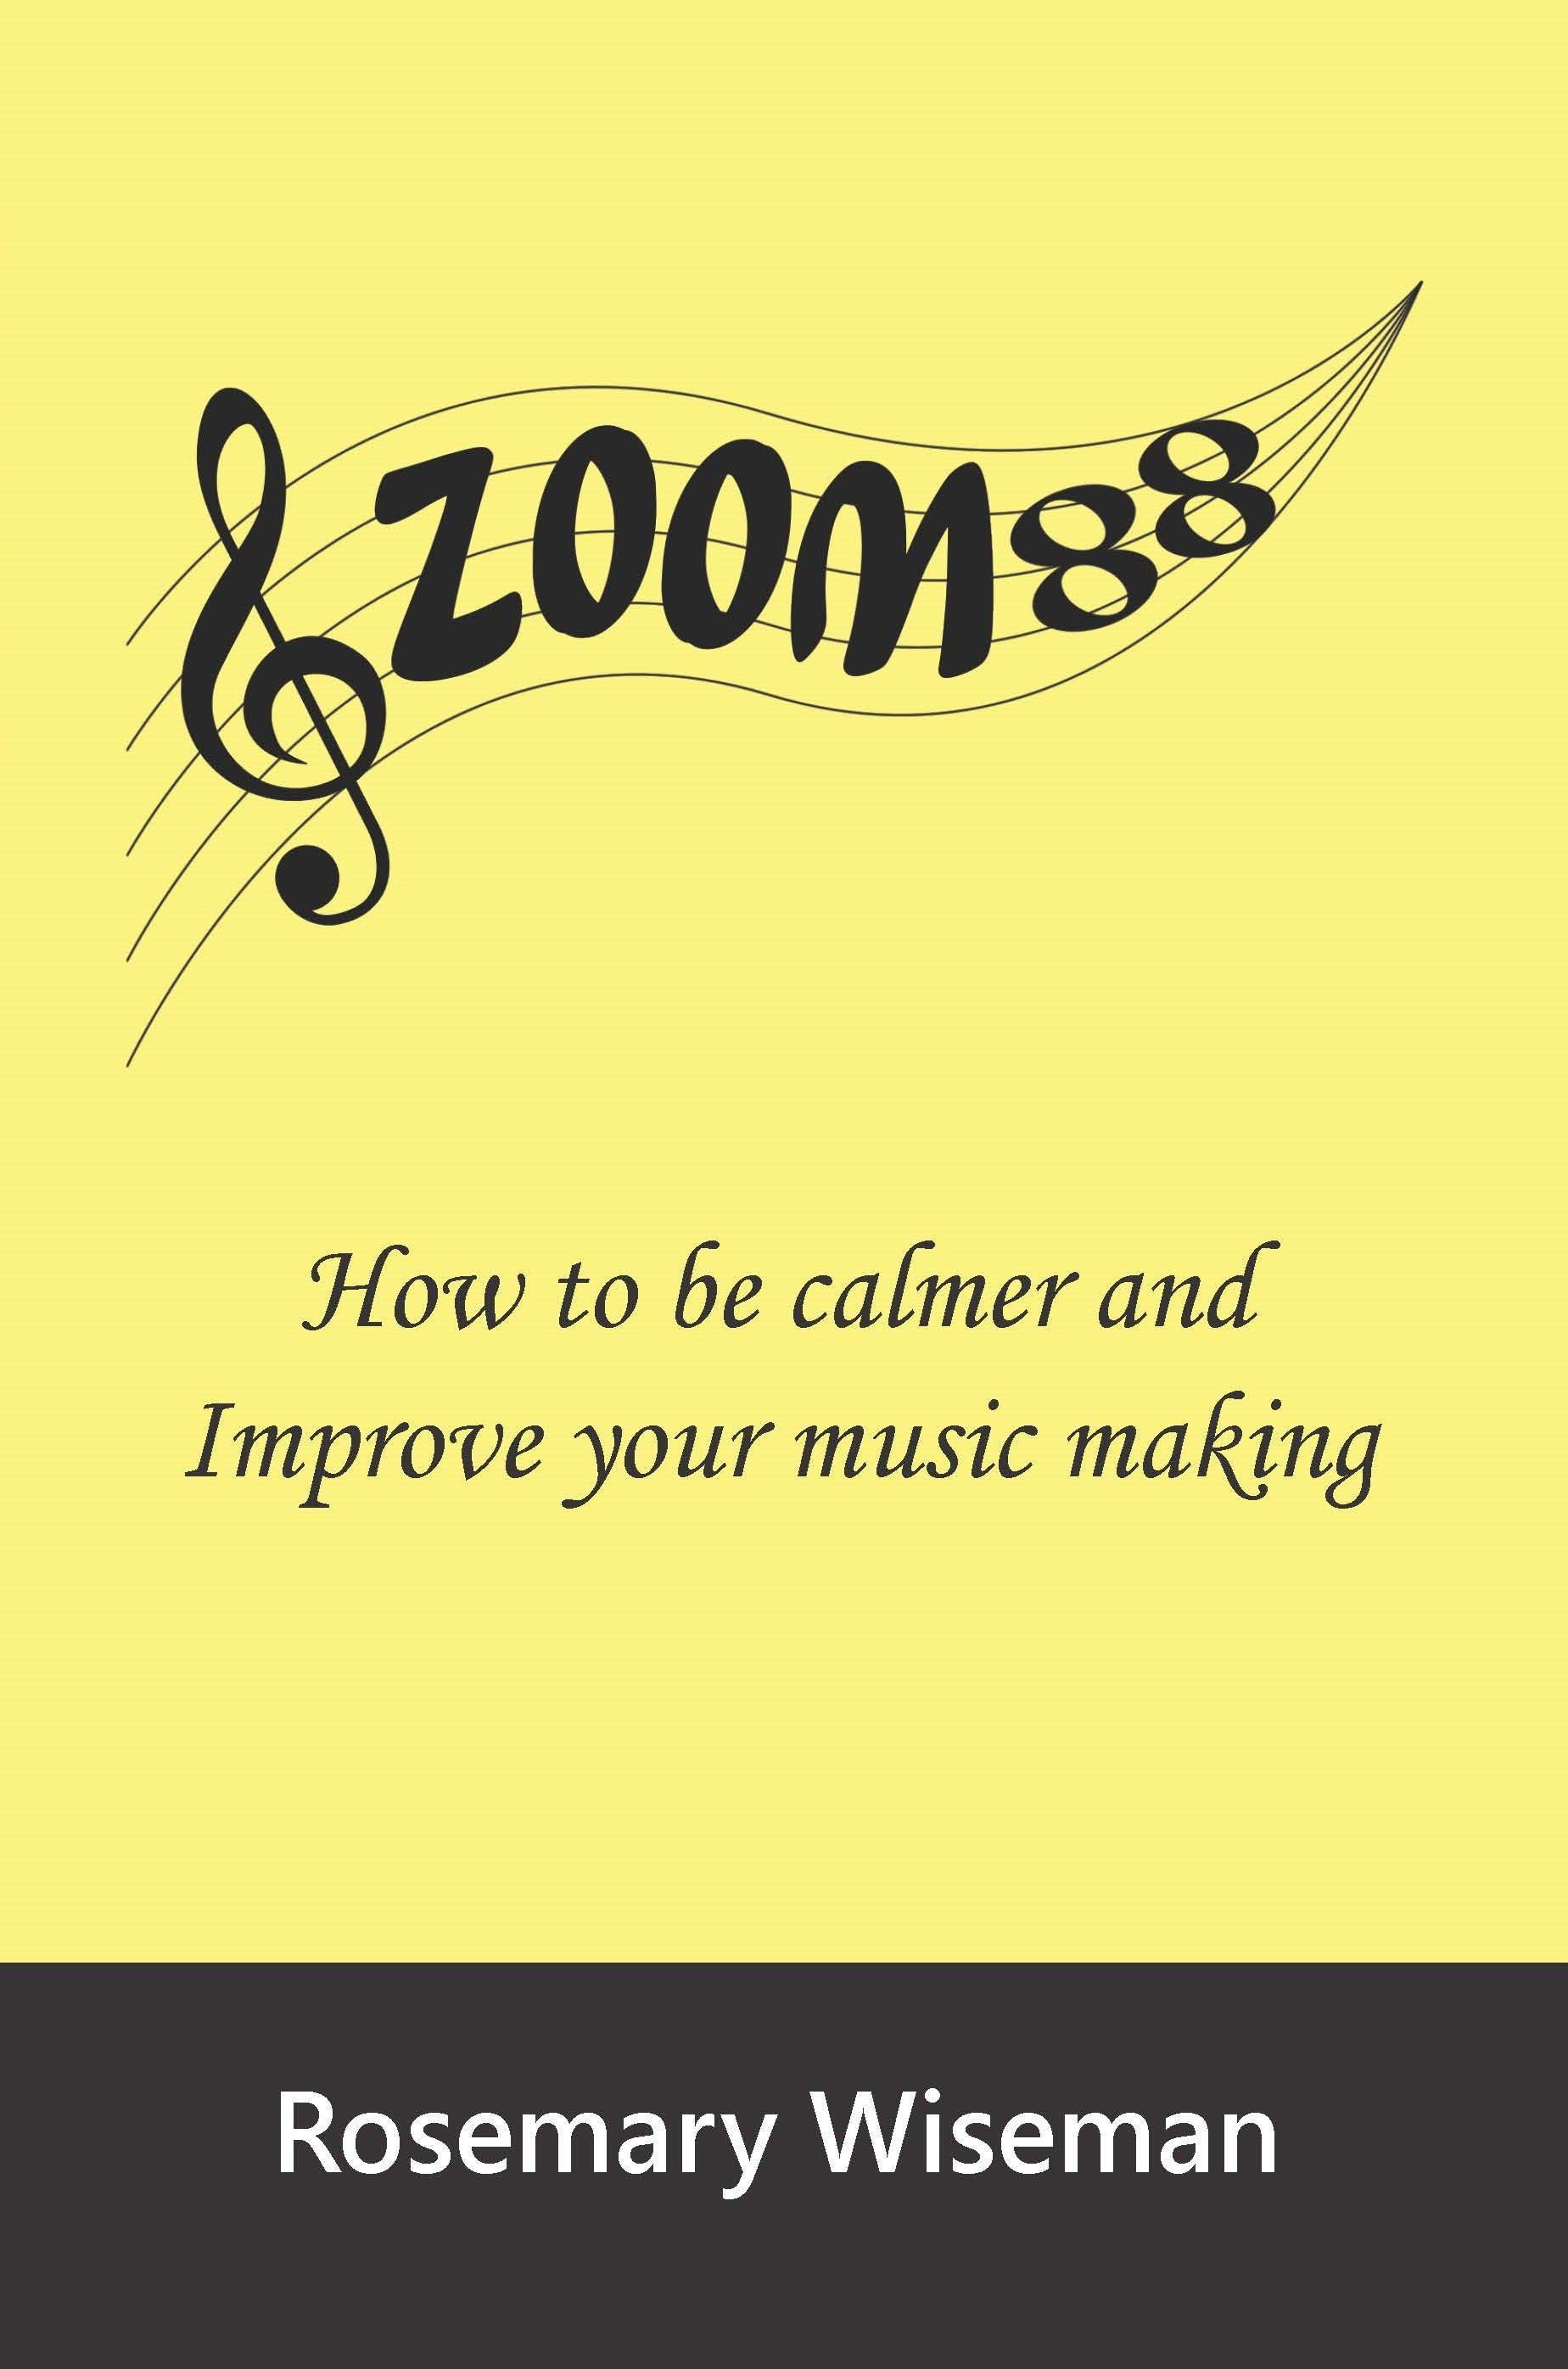 Zoom88: How to be calmer and improve your music making